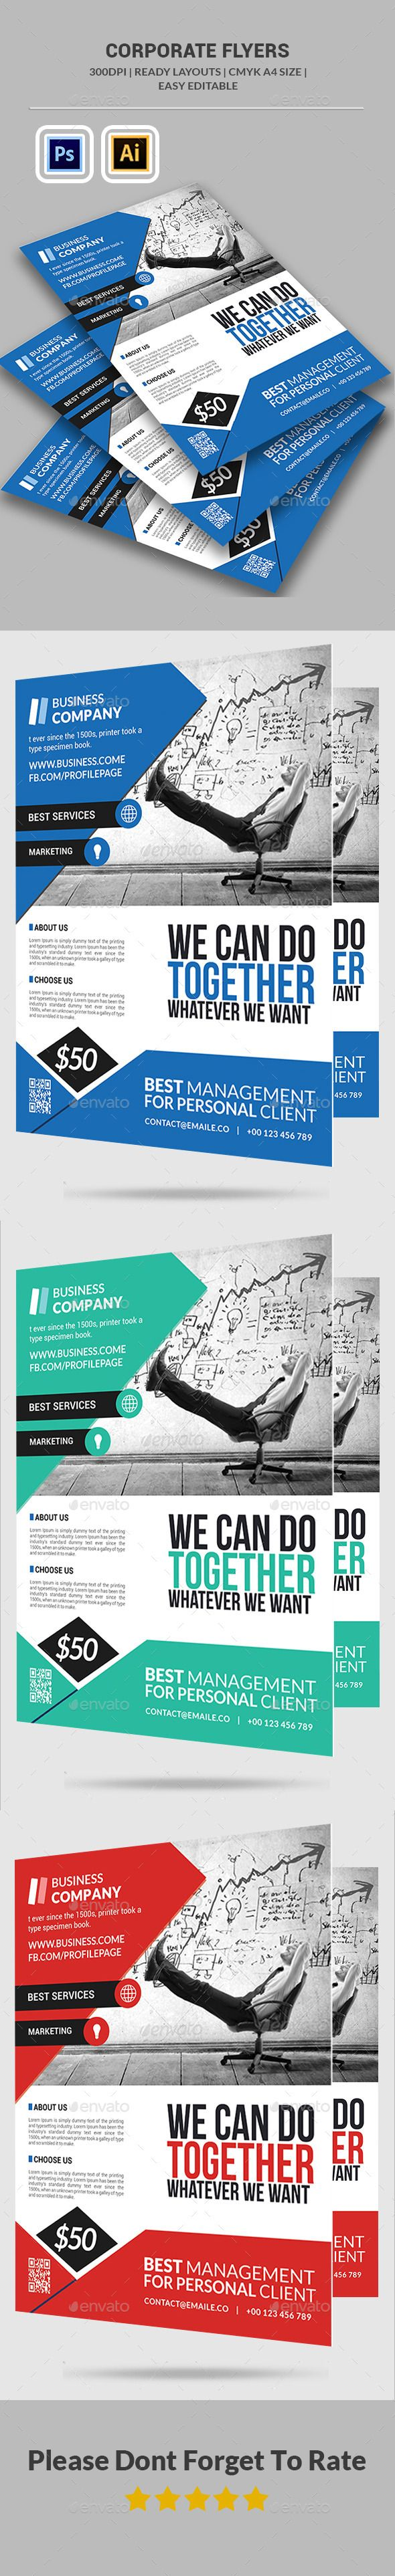 Corporate Business Flyer Template — Photoshop PSD #template #marketing • Available here → https://graphicriver.net/item/corporate-business-flyer-template/12836099?ref=pxcr